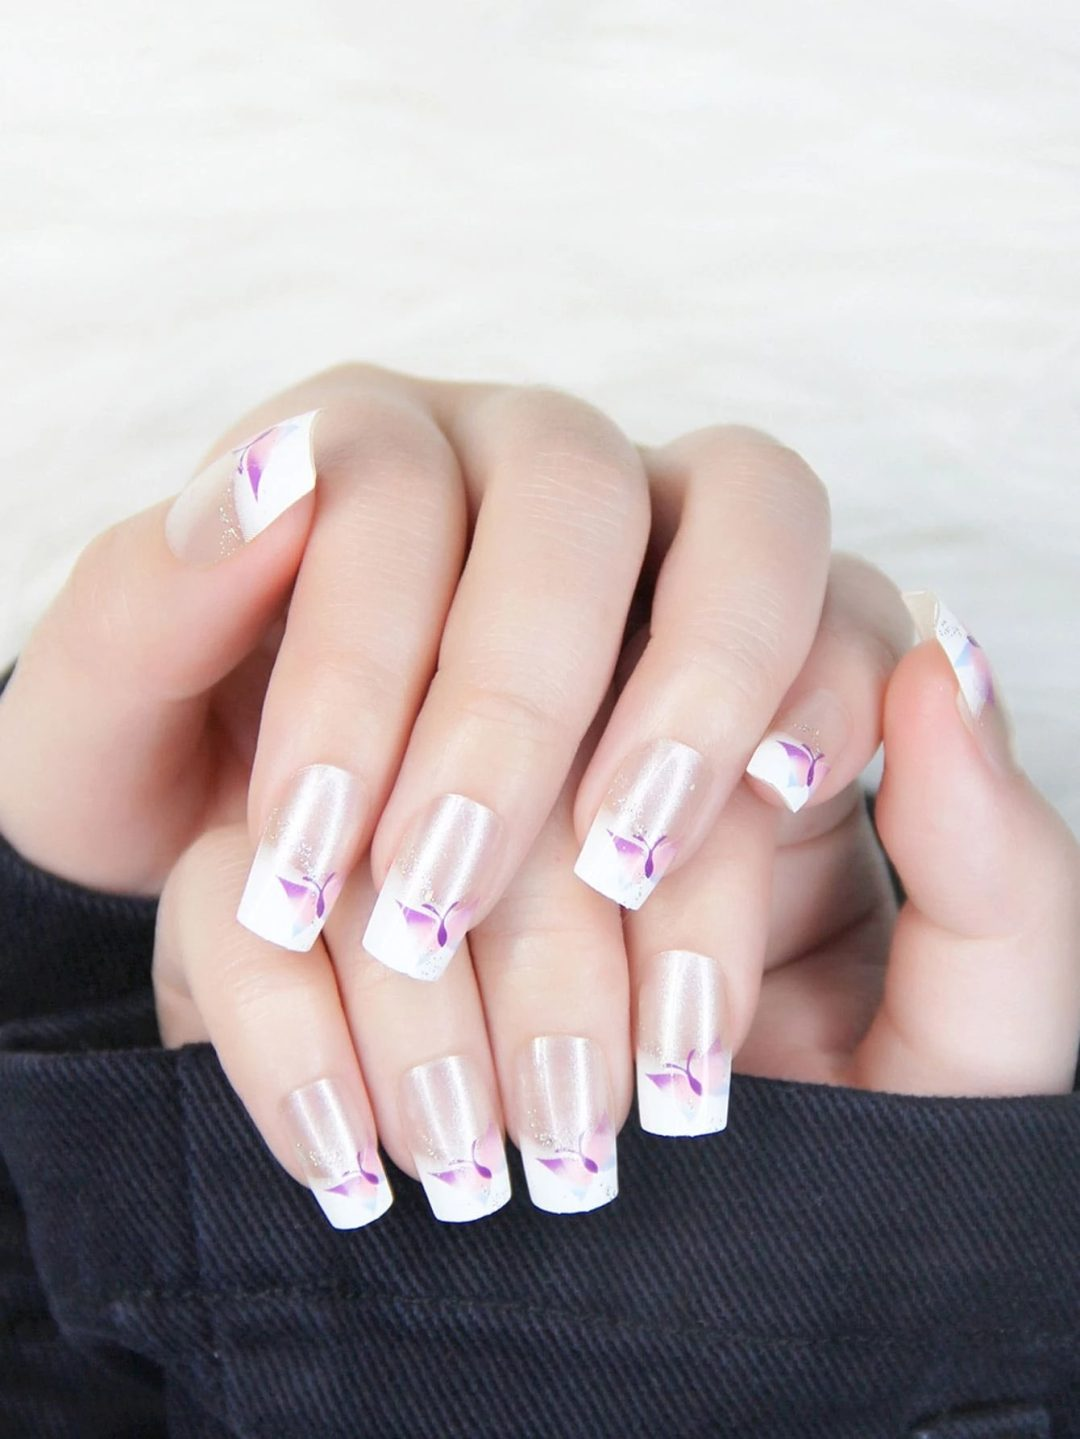 French tip nails with pink butterfly nail art